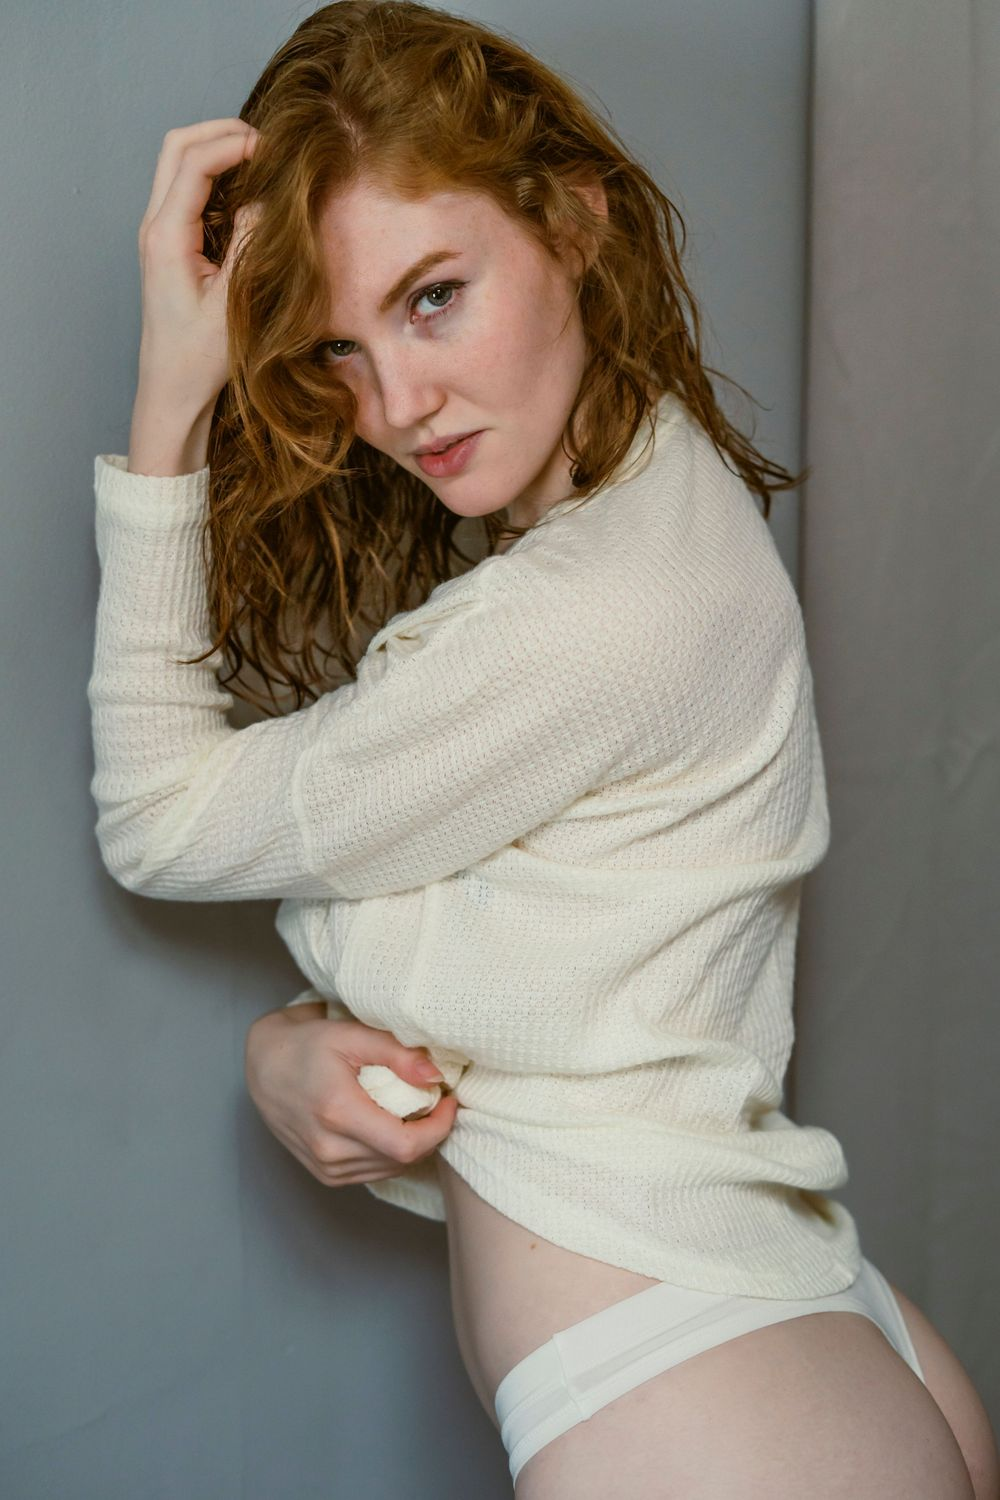 A slender woman with red hair leaning against a wall with one hand in her hair and the other grabbing her sweater